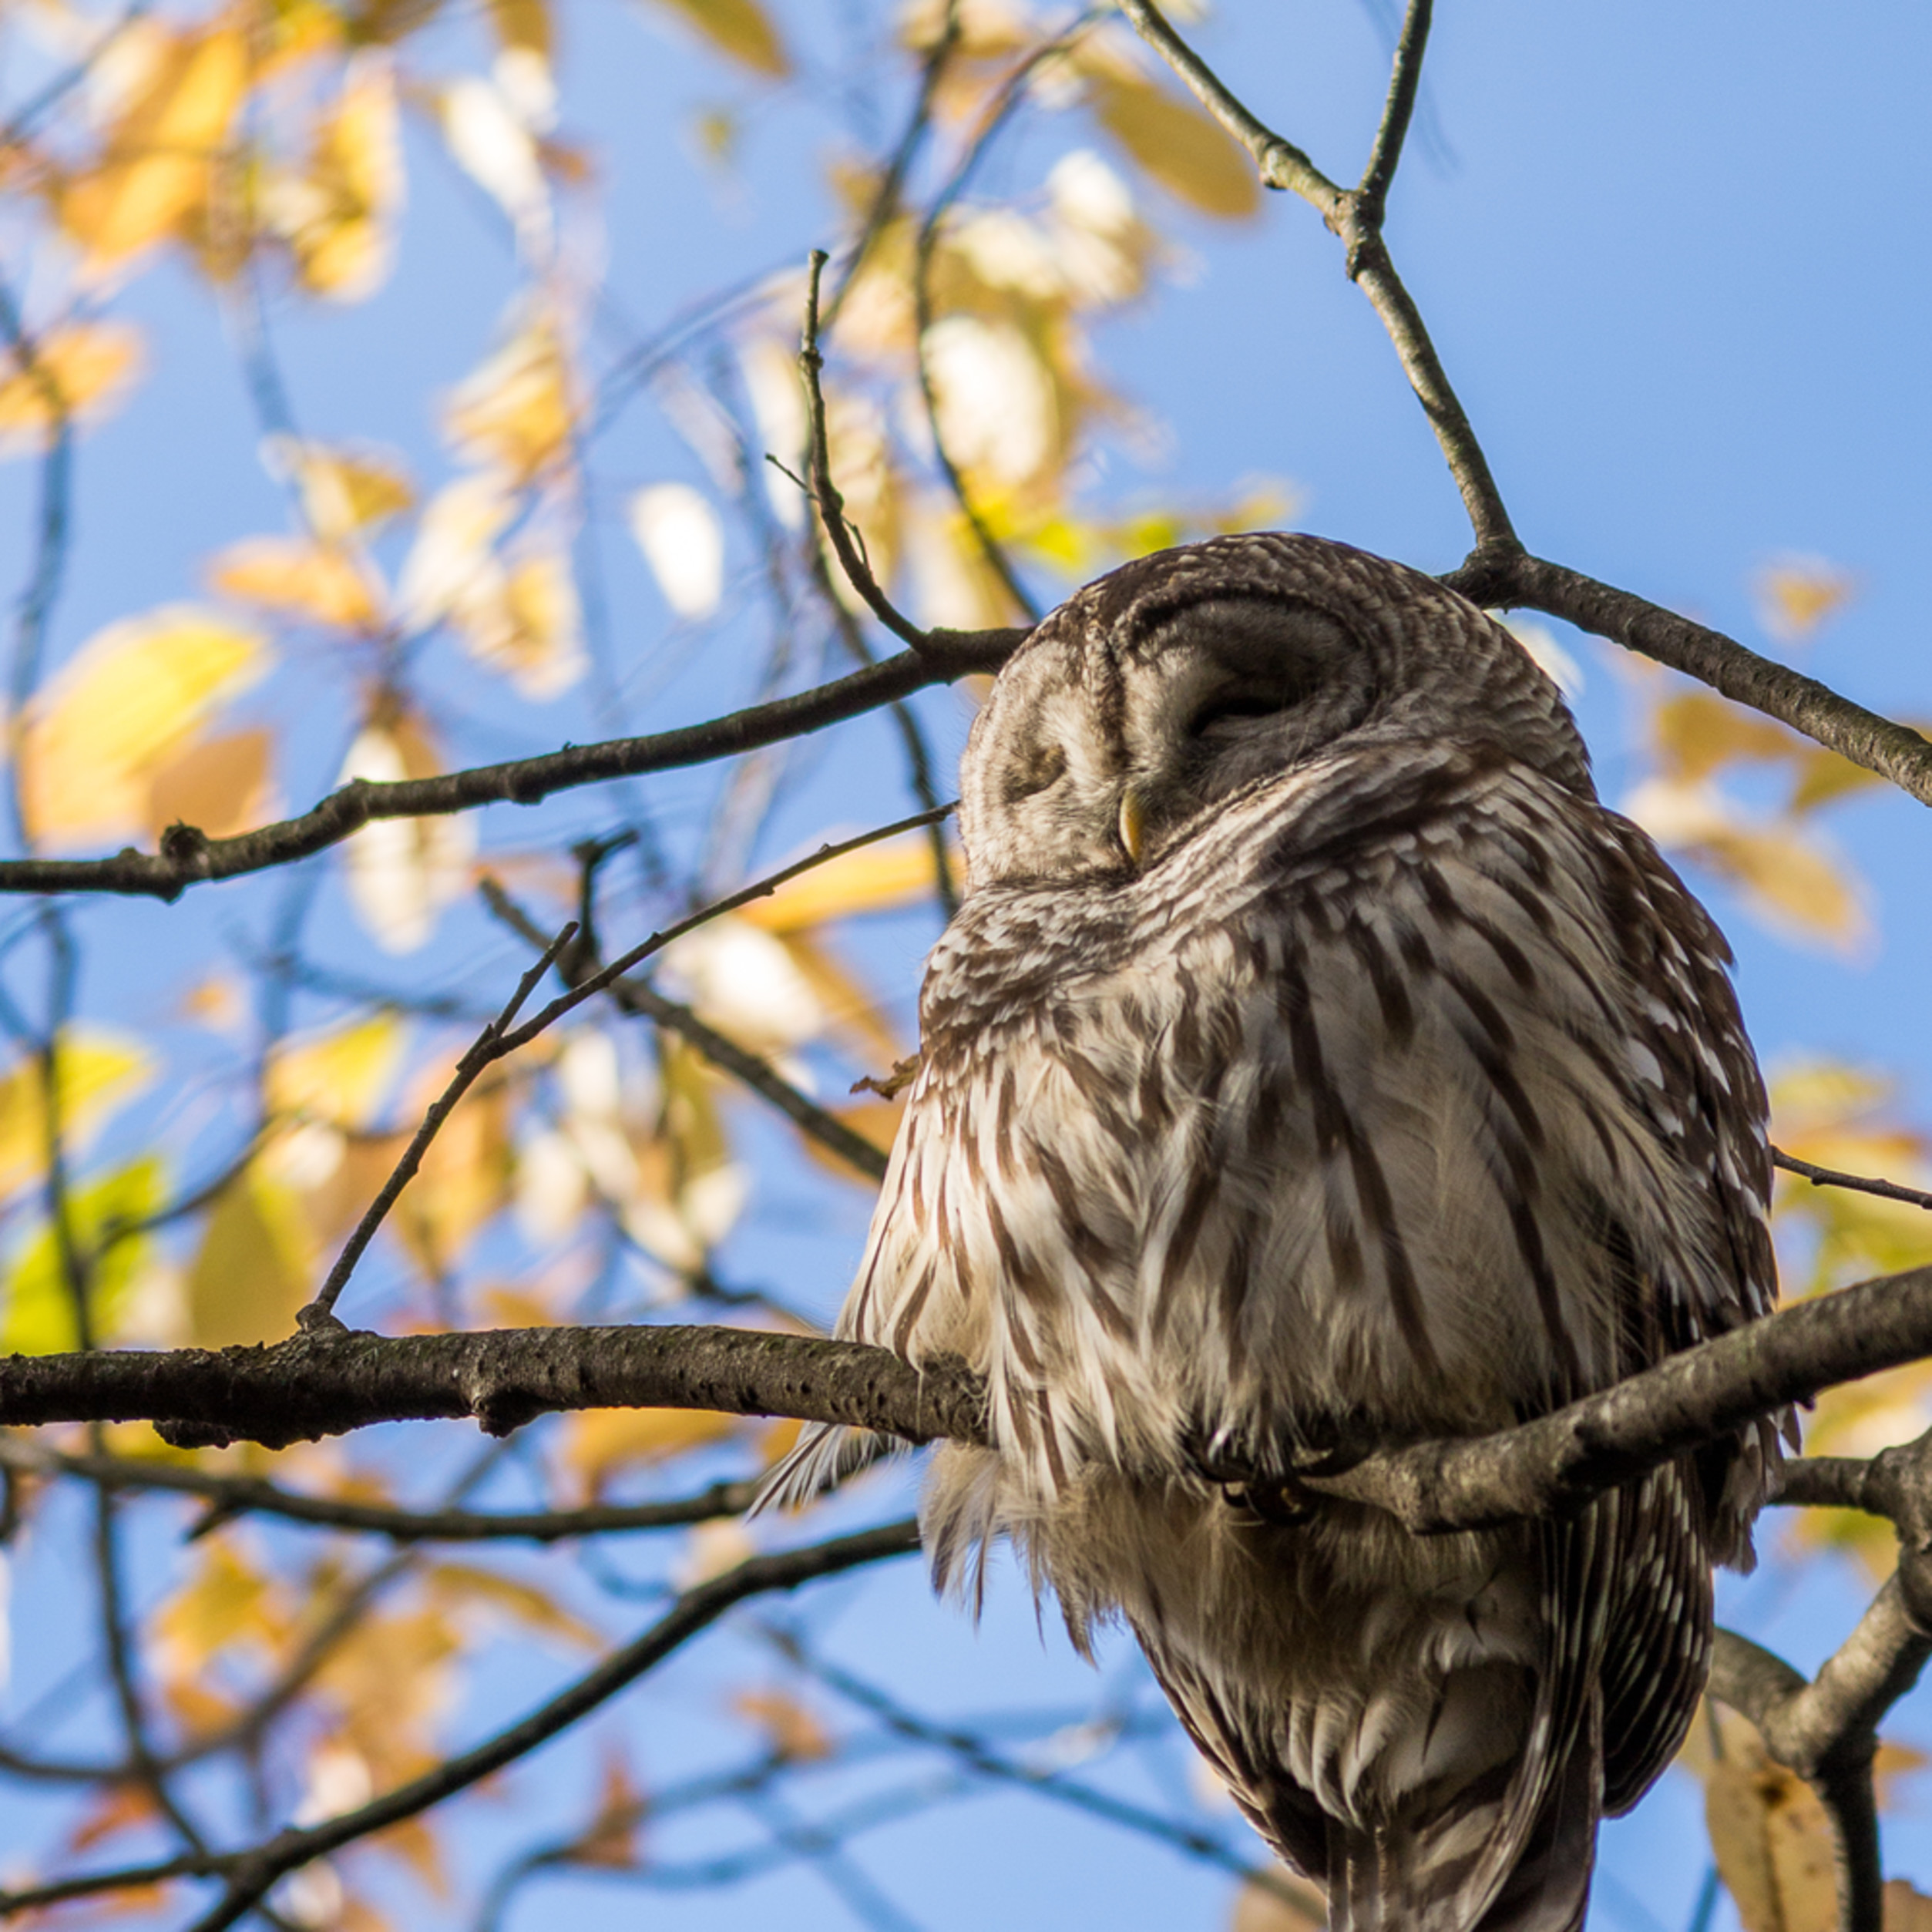 20161022 barred owl 00903 jeybwq